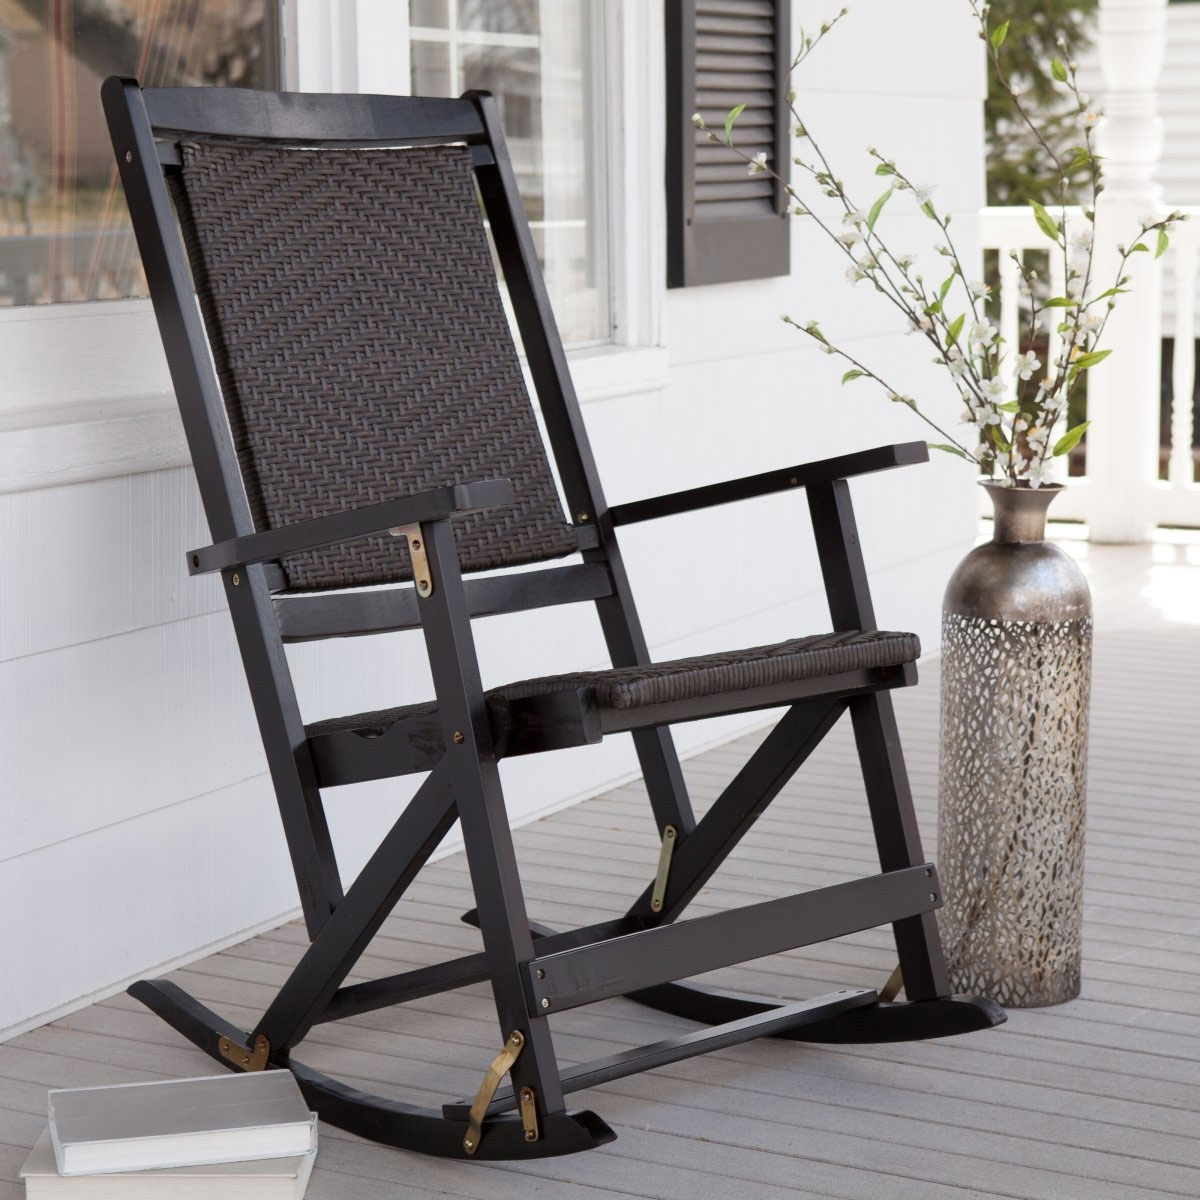 Vintage Outdoor Rocking Chairs Regarding Most Recently Released Outdoor Metal Rocking Chair Modern Chairs Quality Interior Lawn (View 12 of 15)